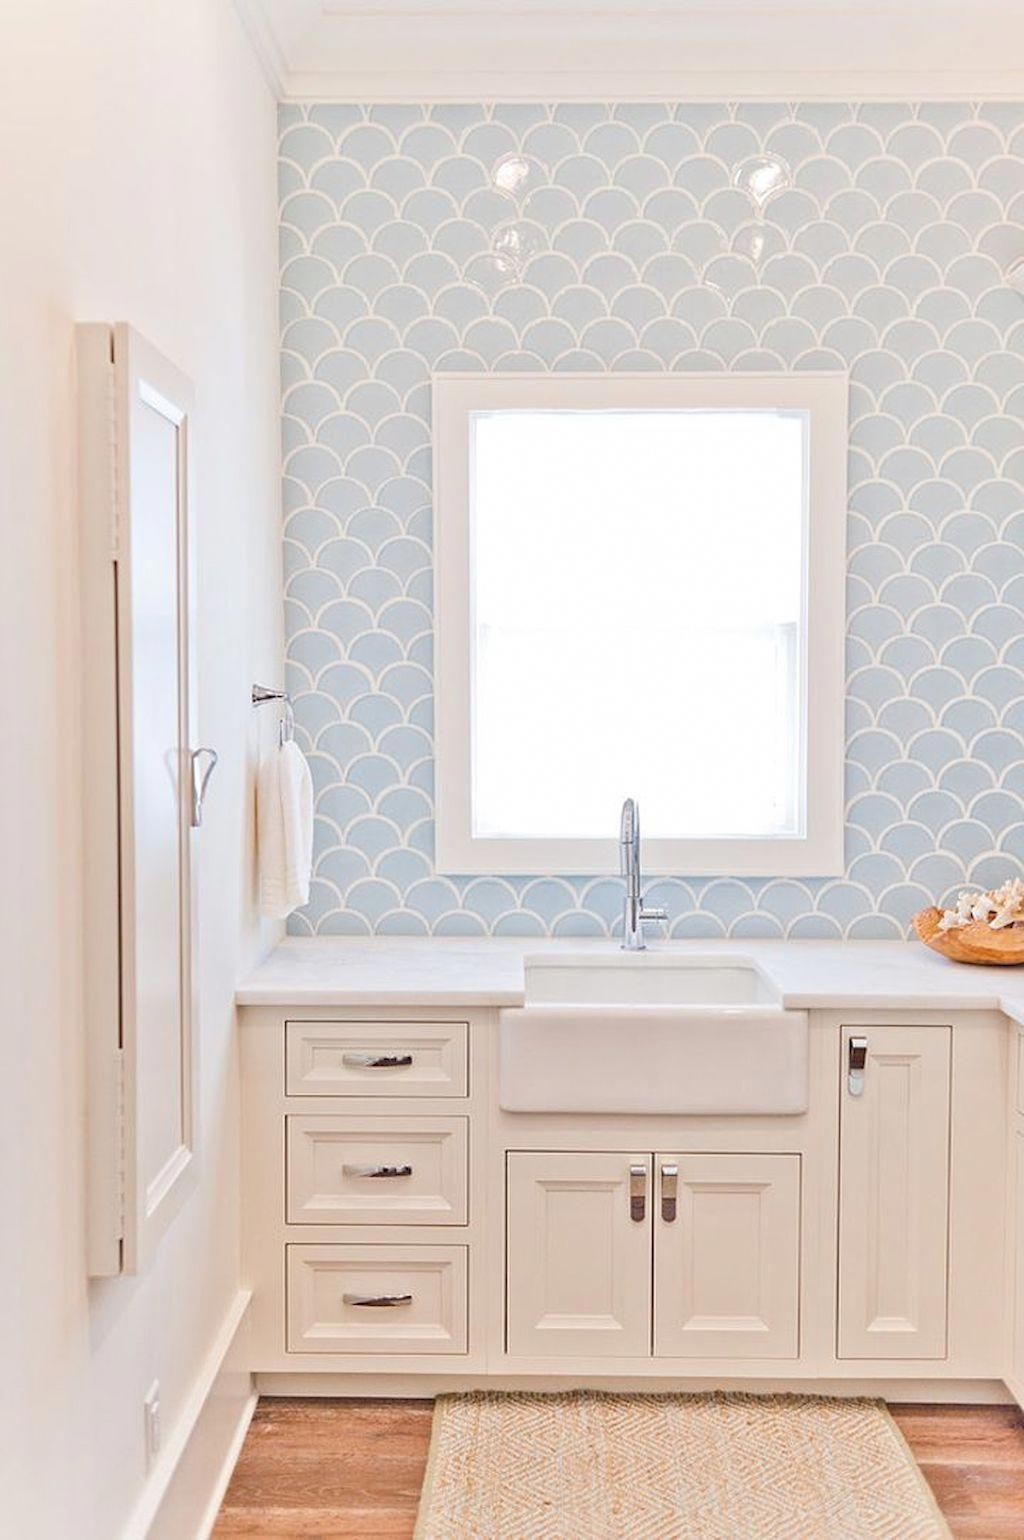 Valuable recommendation pertaining to Restroom Remodel Ideas #restroomremodel Valuable recommendation pertaining to Restroom Remodel Ideas #restroomremodel